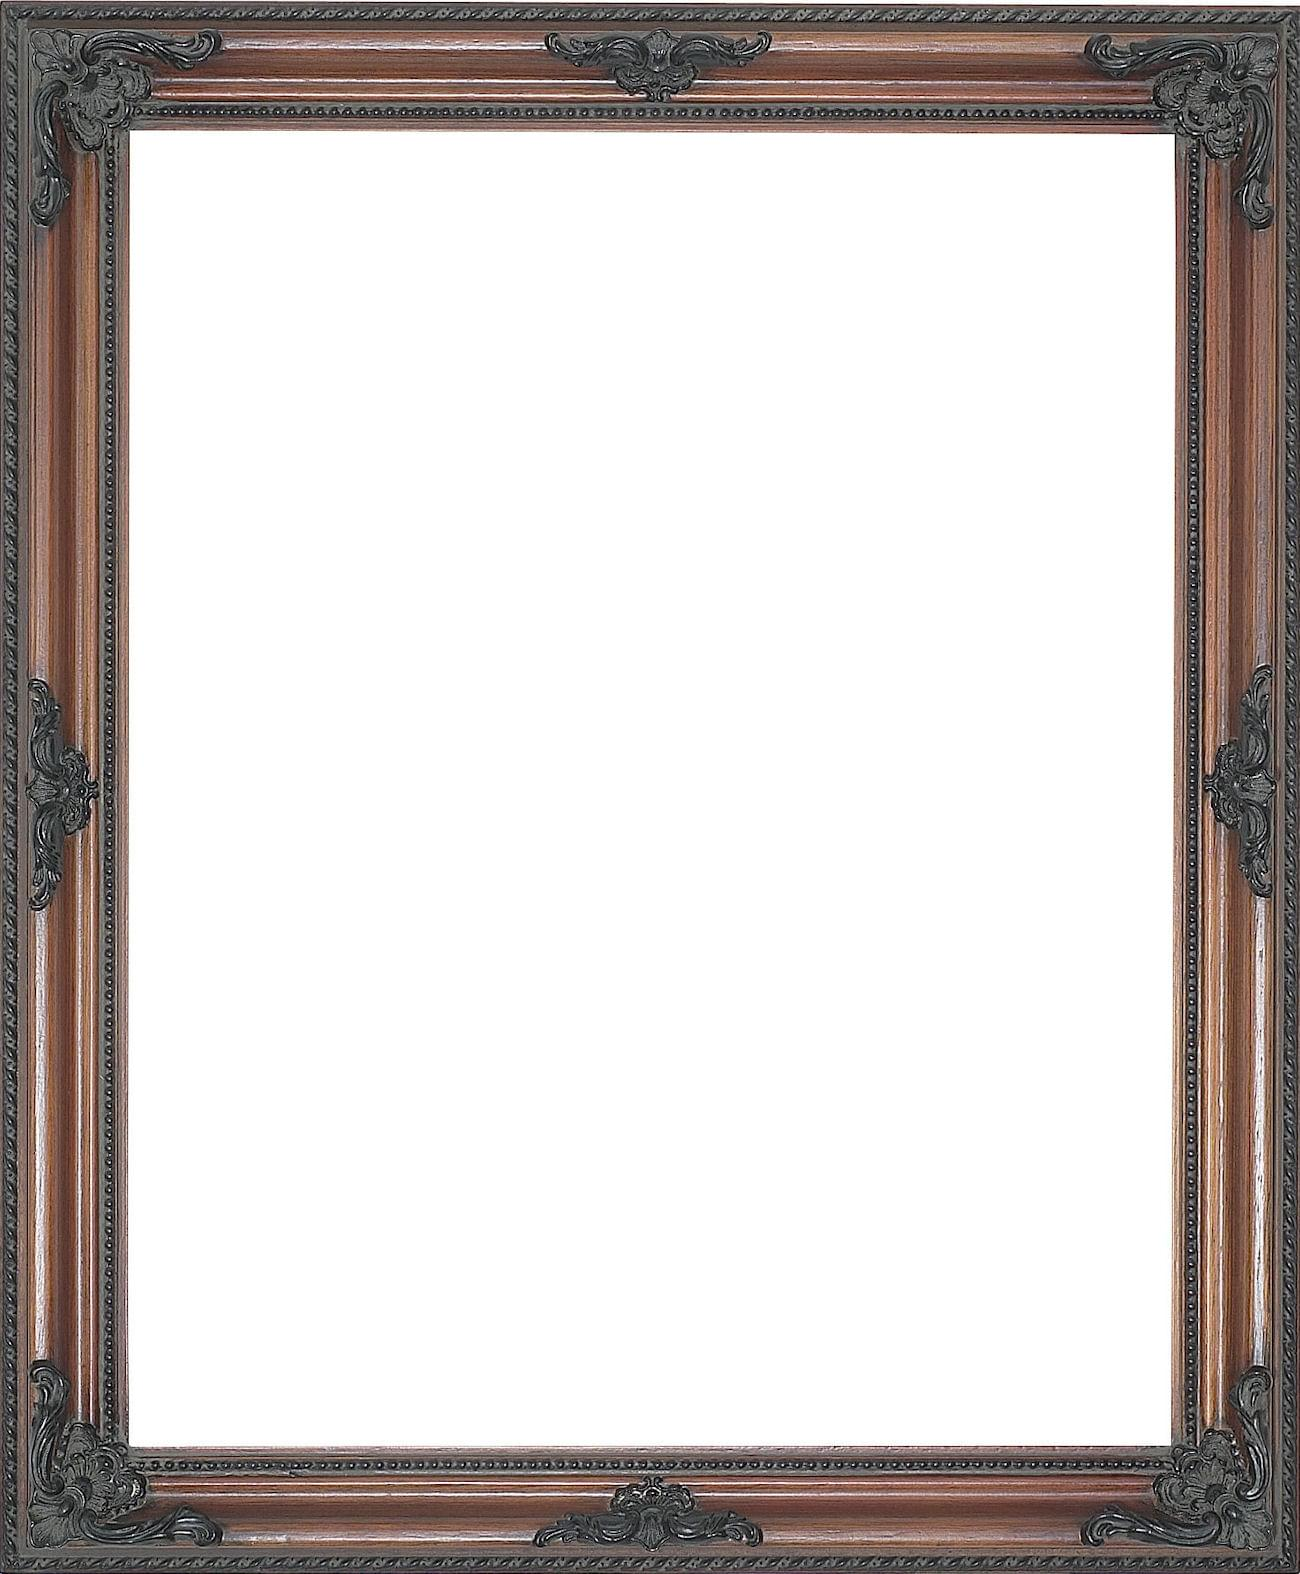 Frames Online Custom Photo Painting And Picture Frames Online Frames